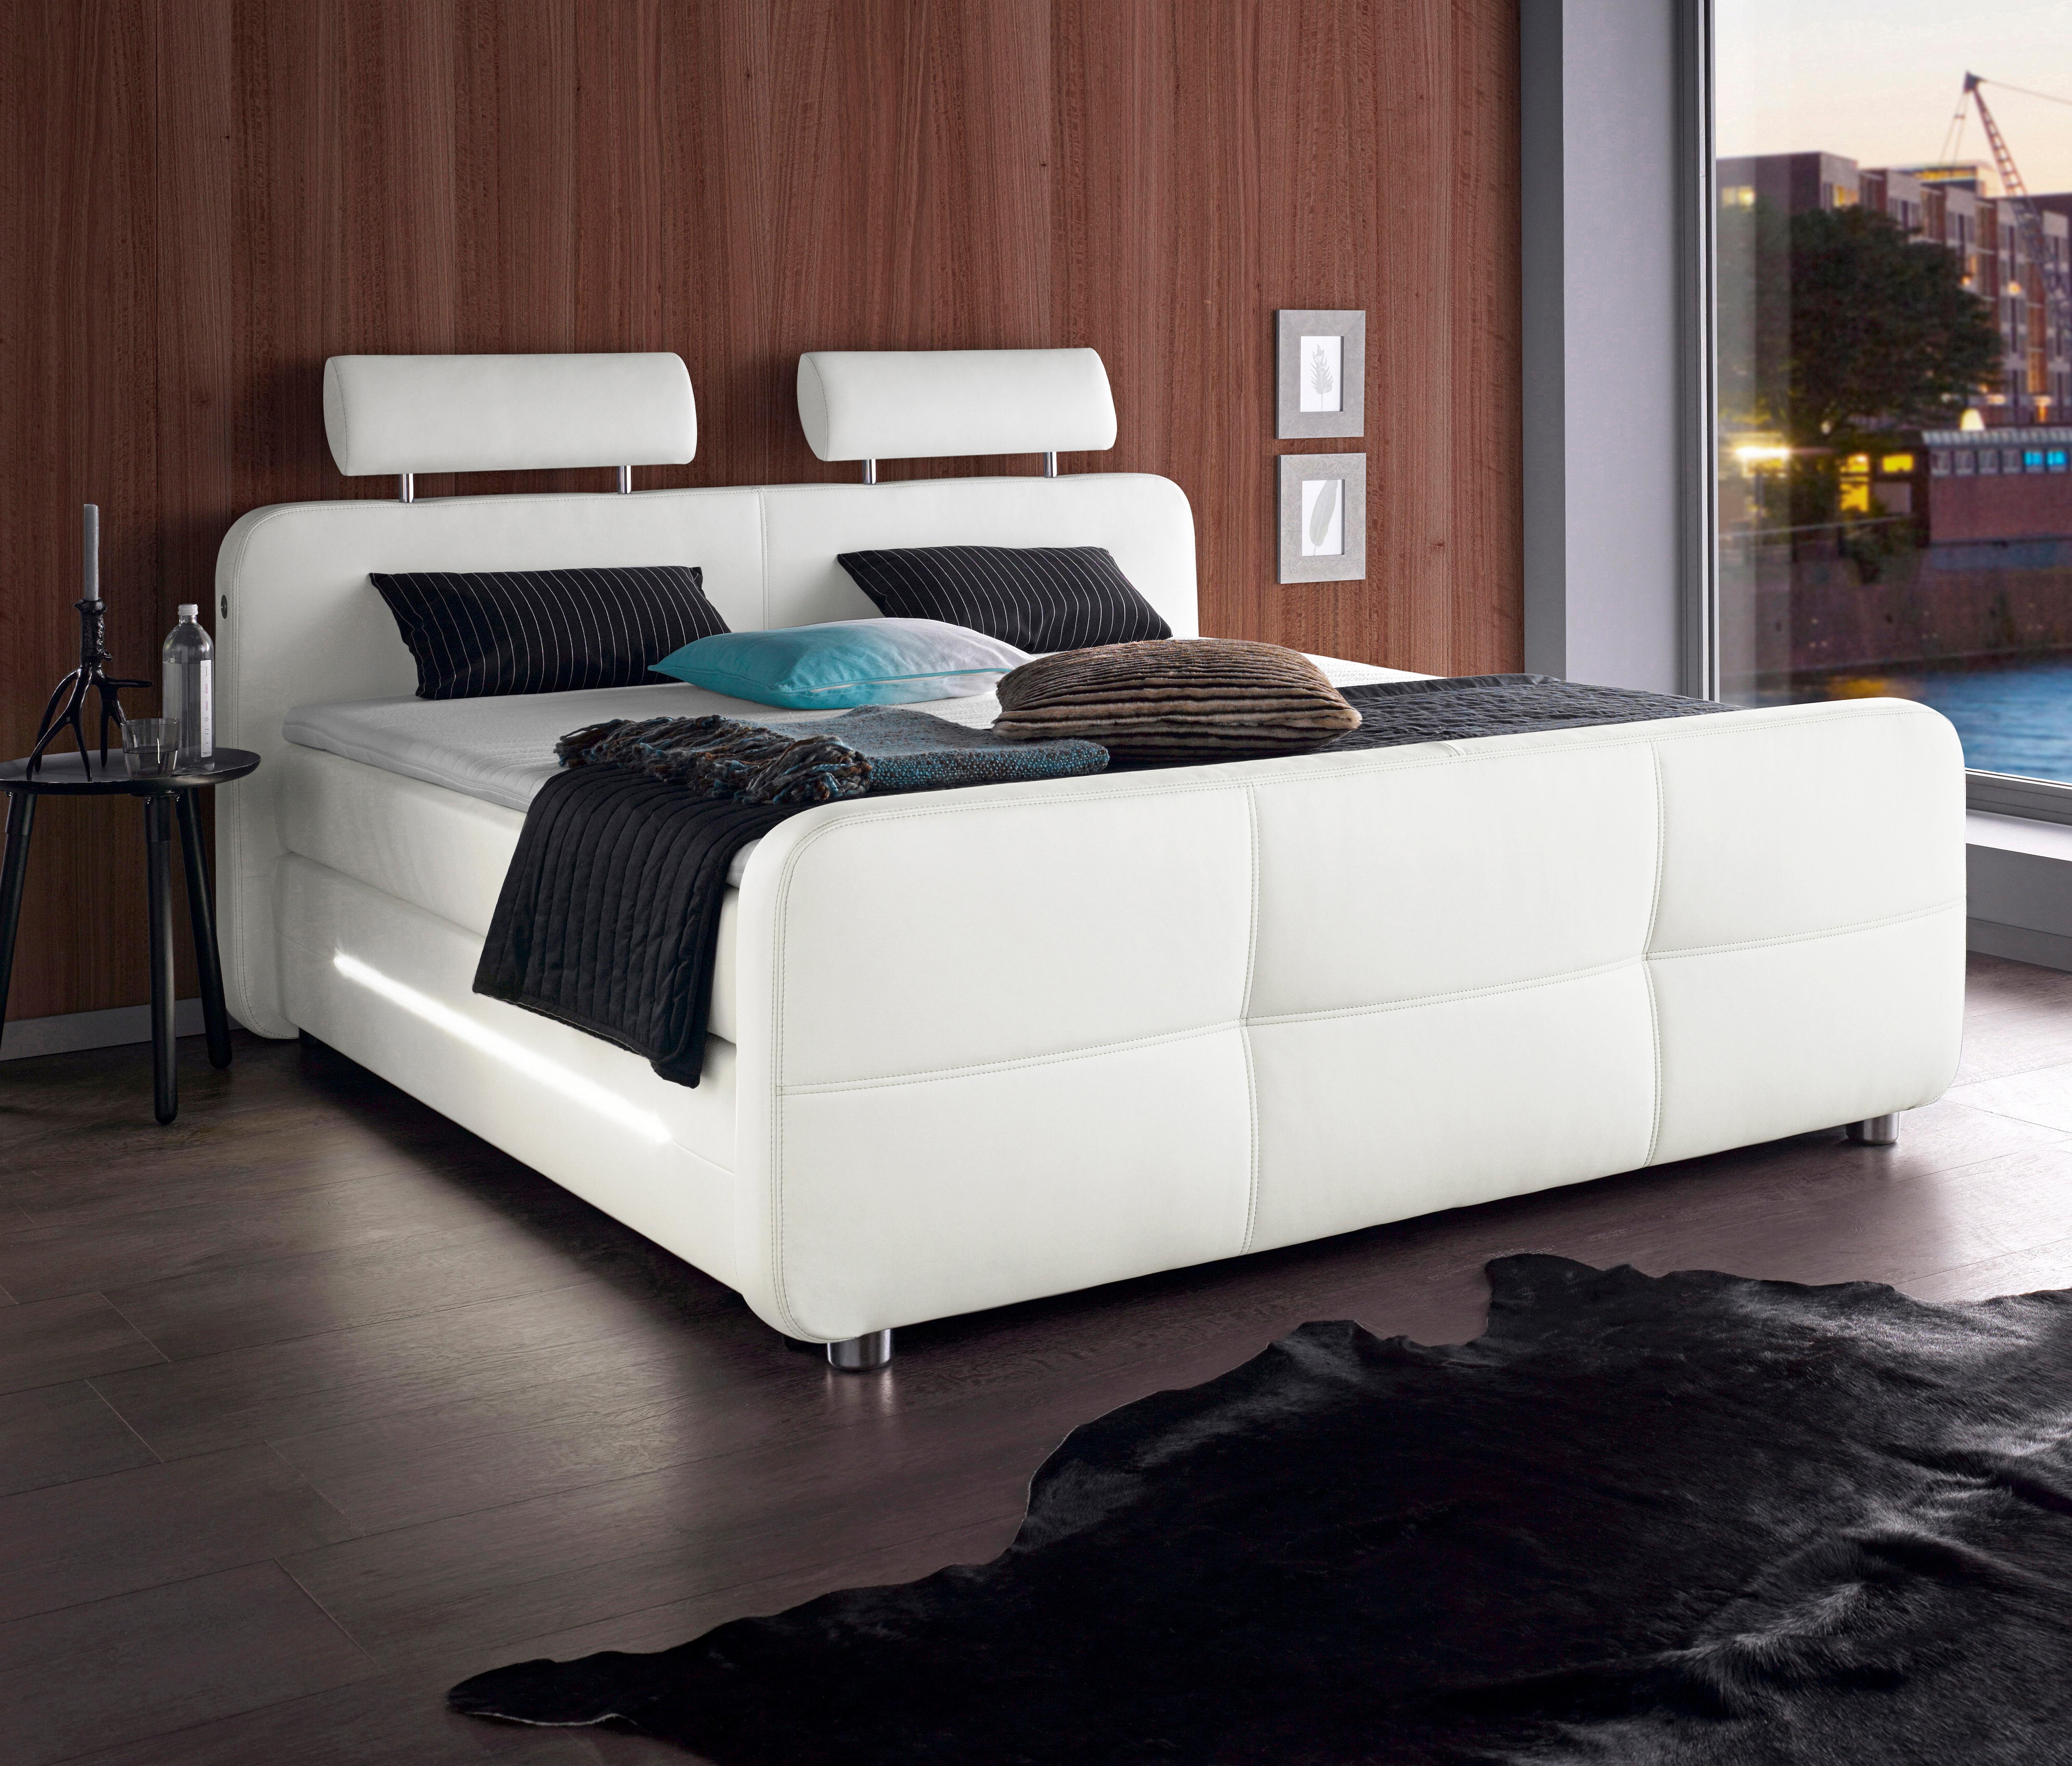 places of style boxspringbett auf rechnung kaufen. Black Bedroom Furniture Sets. Home Design Ideas